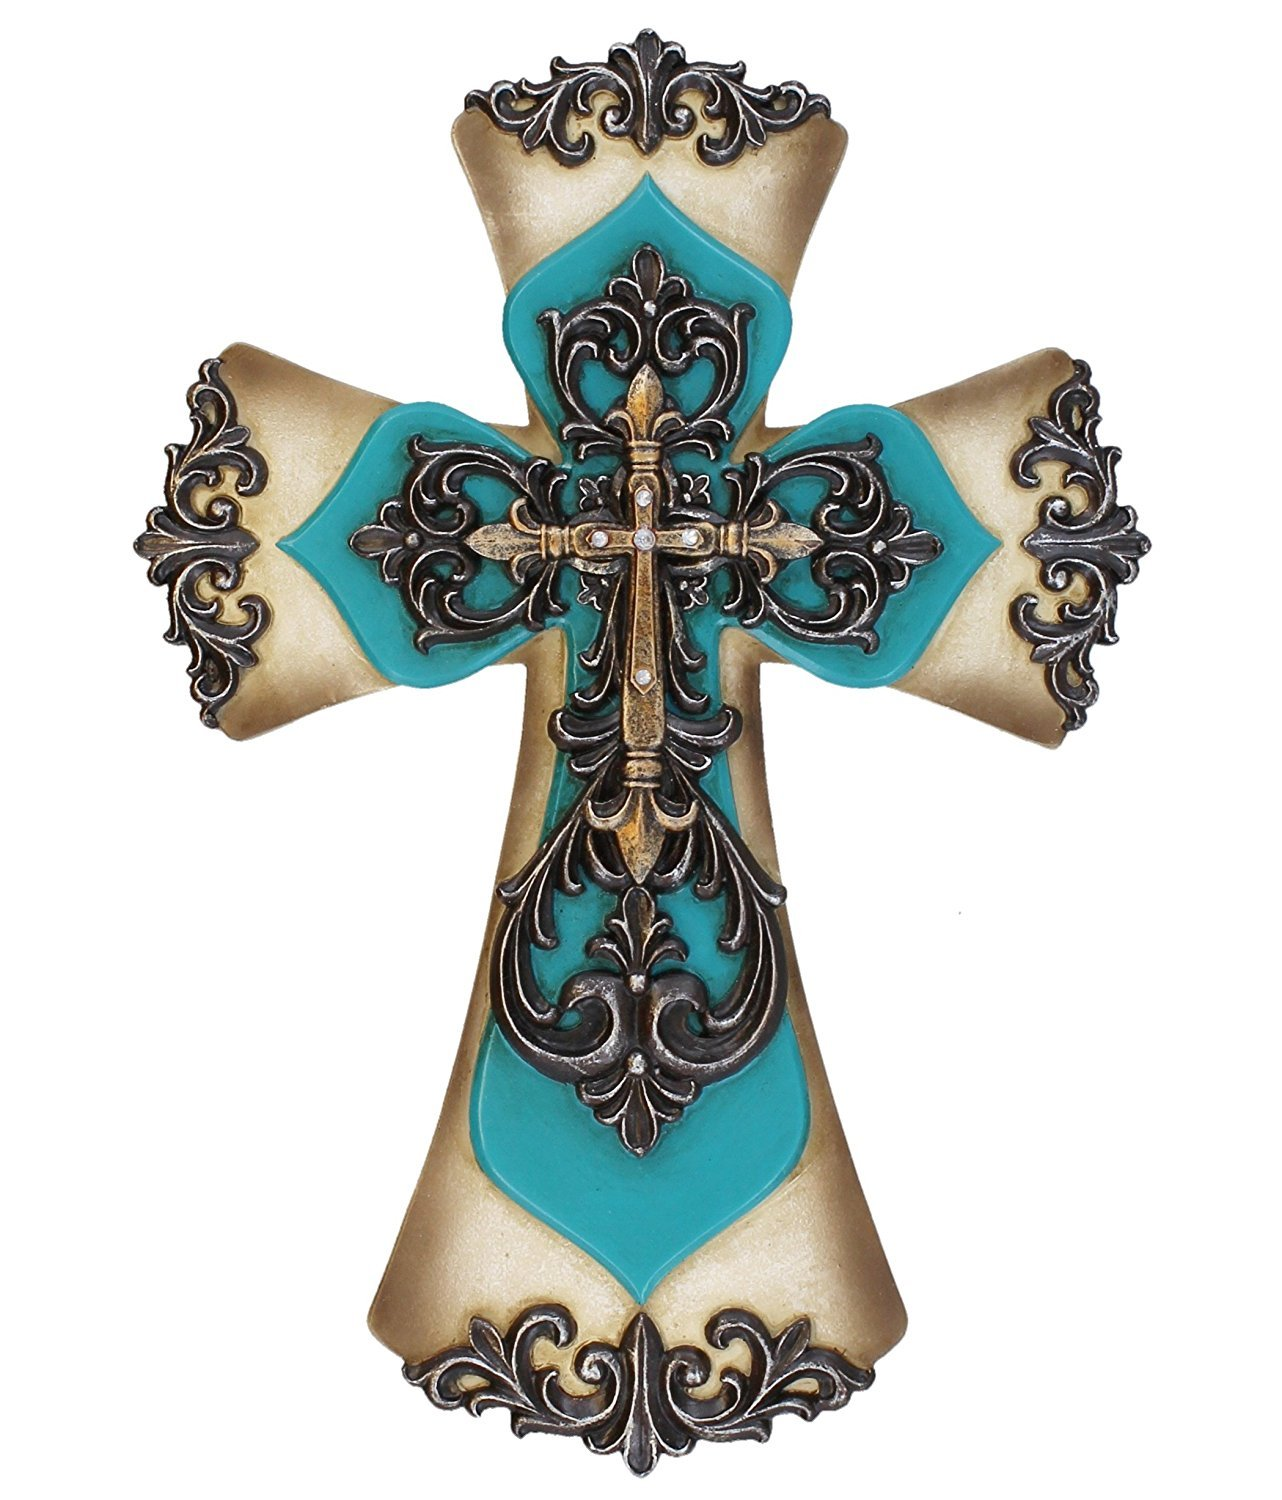 Old River Decorative Layered Teal Tuscan Wall Cross Scrolly Fleur De Lis Old River Outdoors